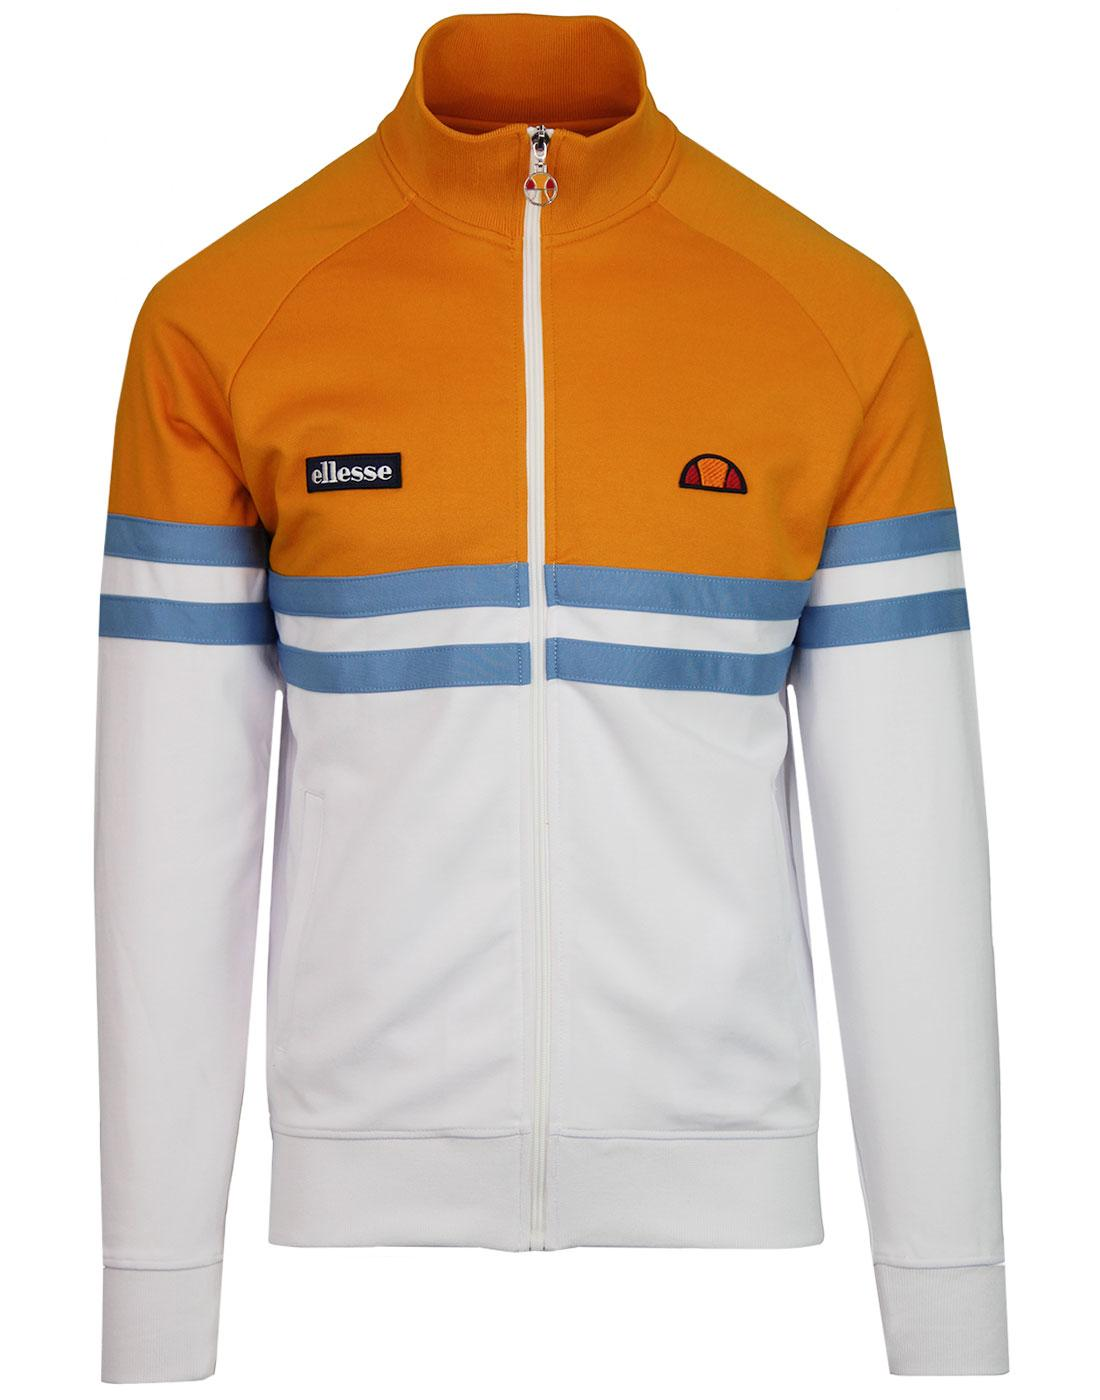 Rimini ELLESSE Retro 80s Panel Stripe Track Top CY